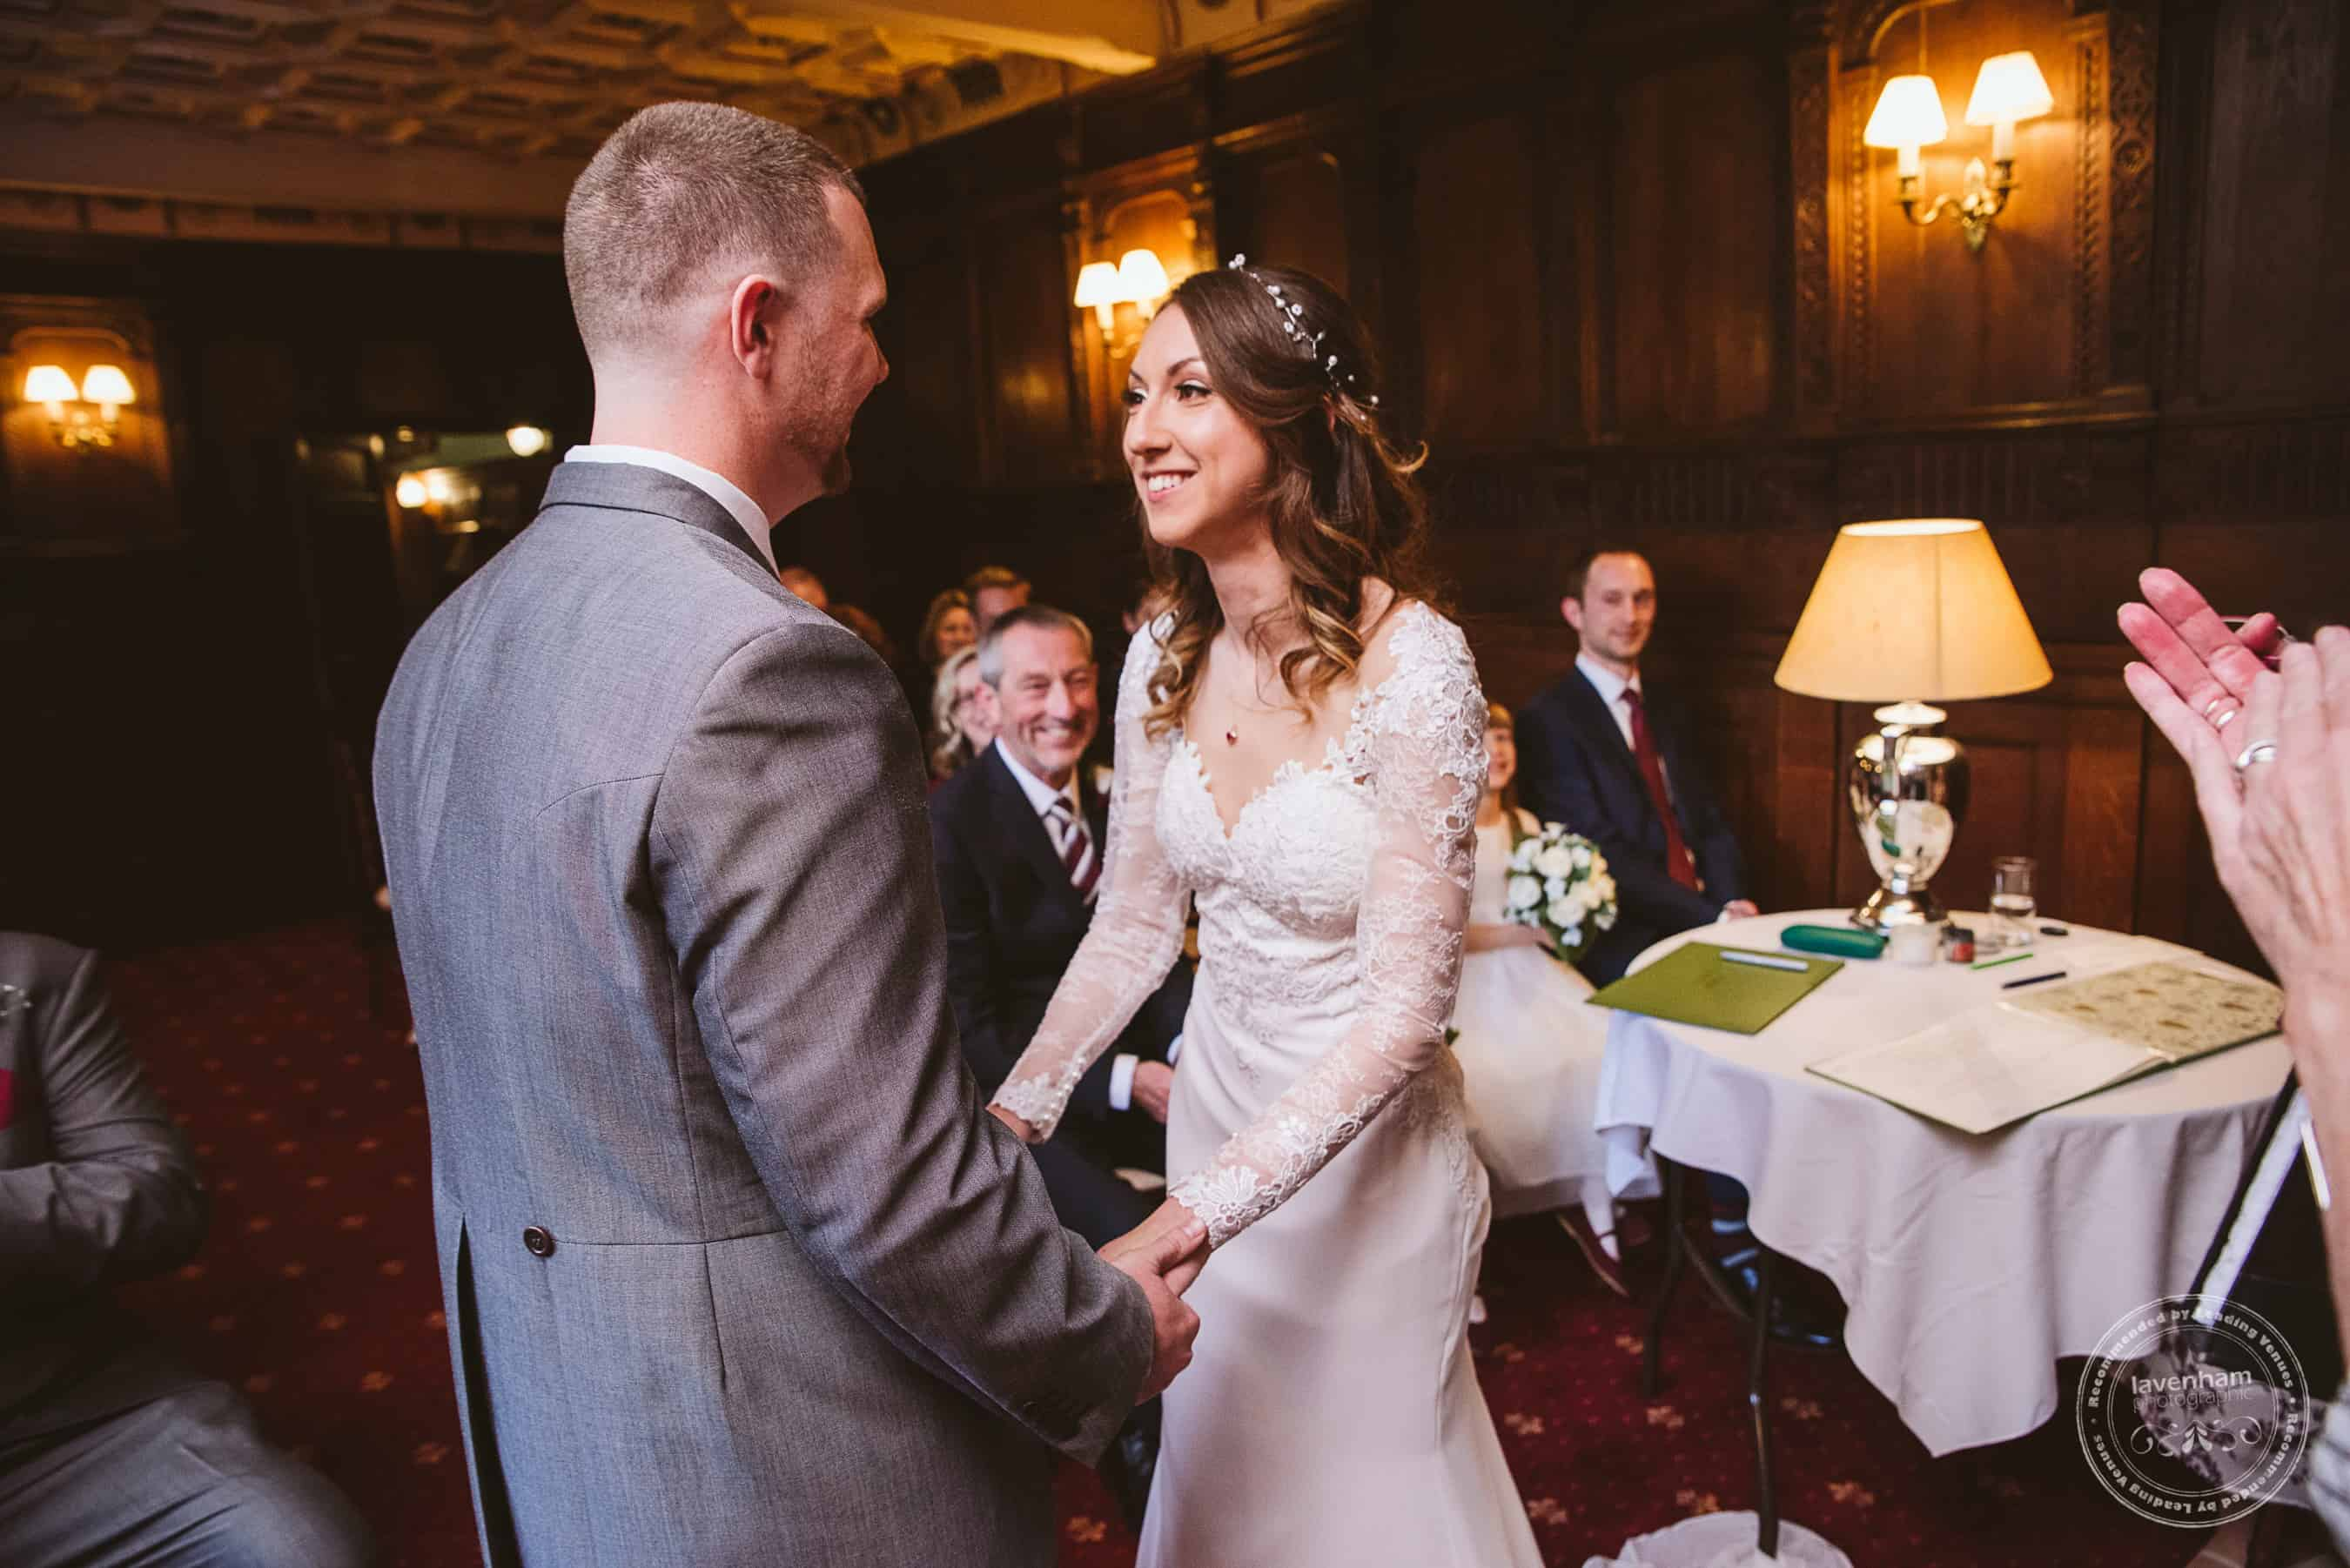 041118 Woodhall Manor Wedding Photography by Lavenham Photographic 040